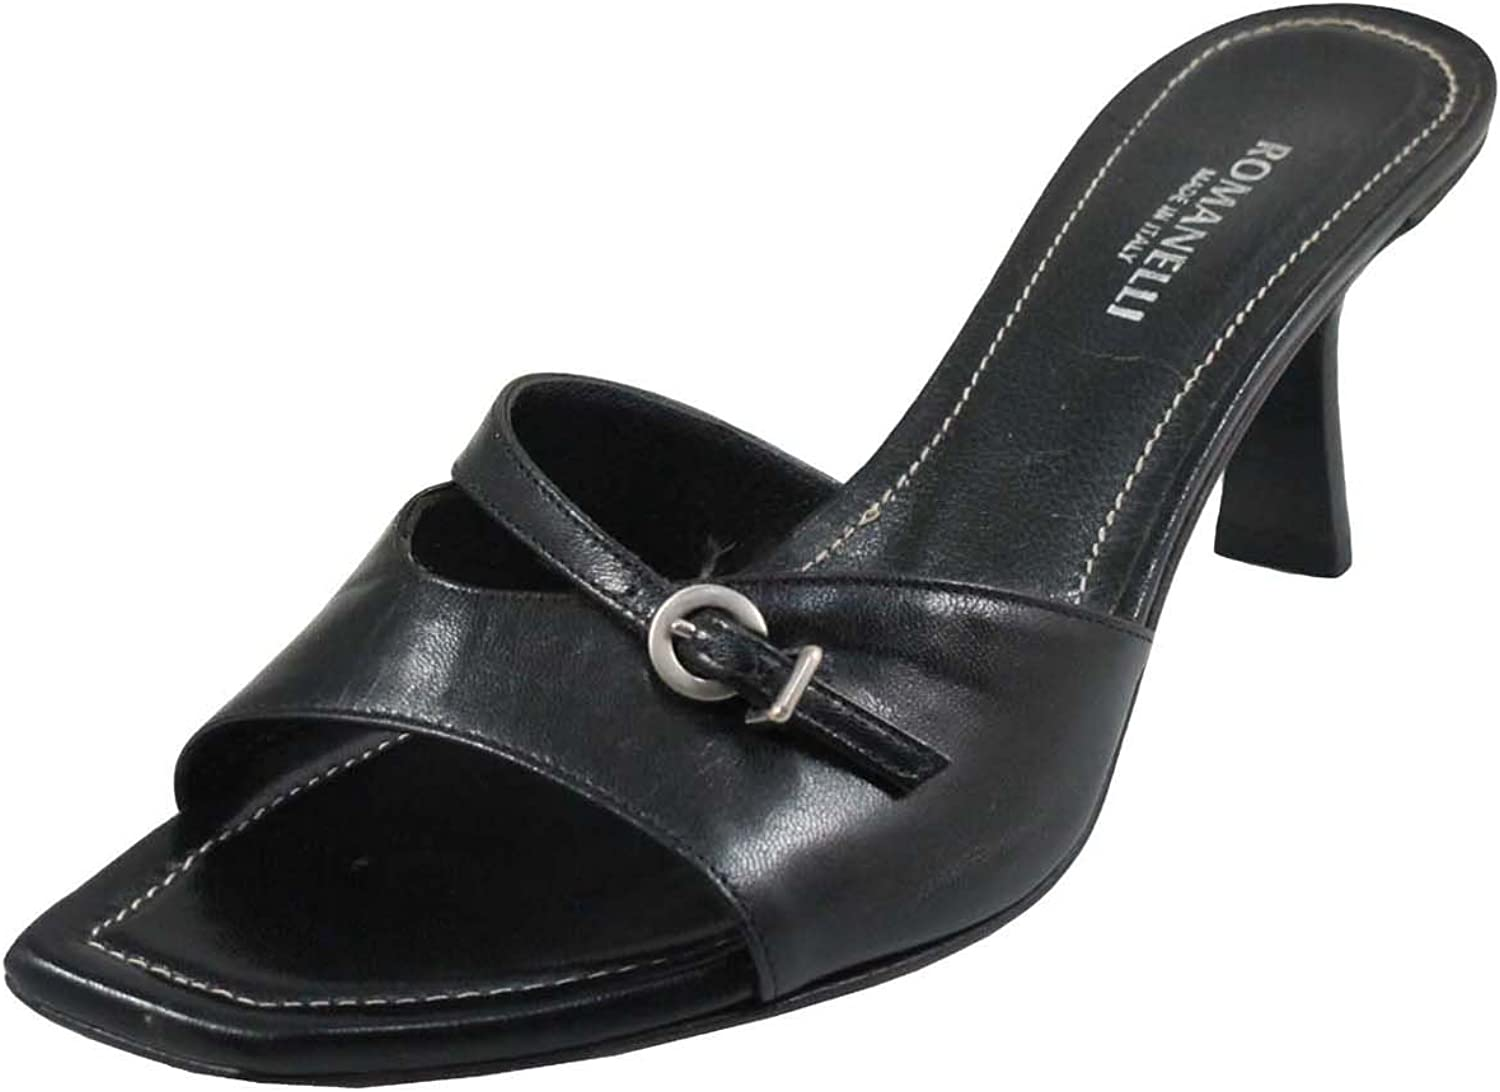 Romanelli 9409 Women's Italian Slide mid Heel Open Toe Sandals